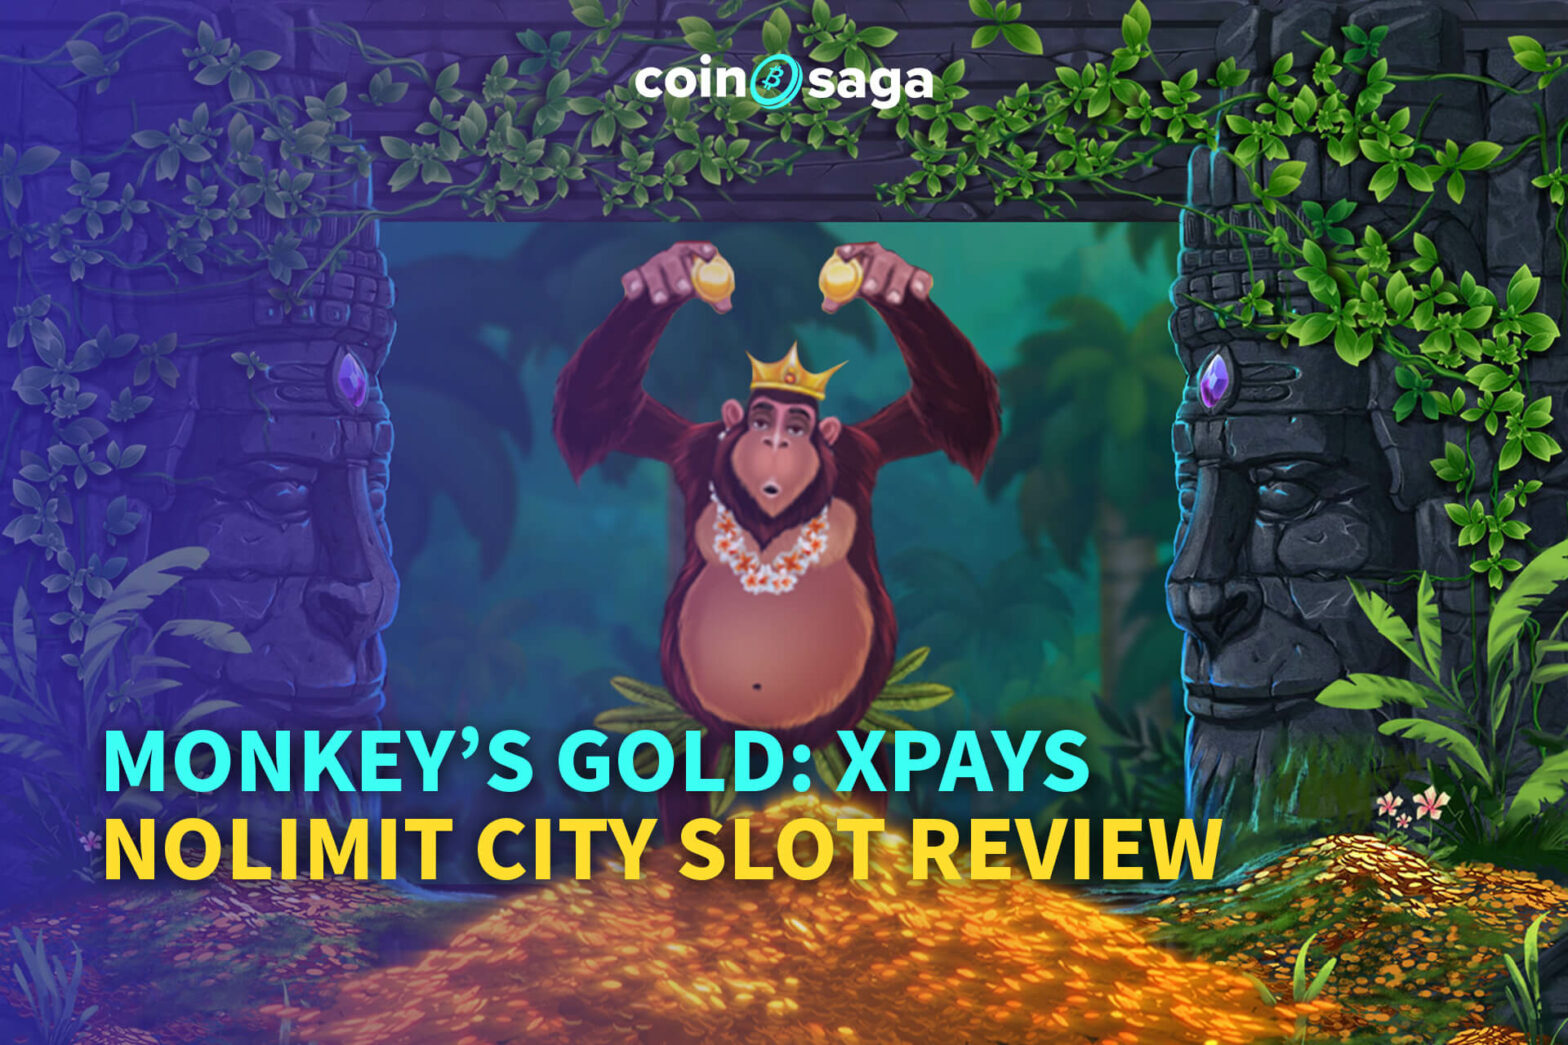 Mokey's Gold slot review